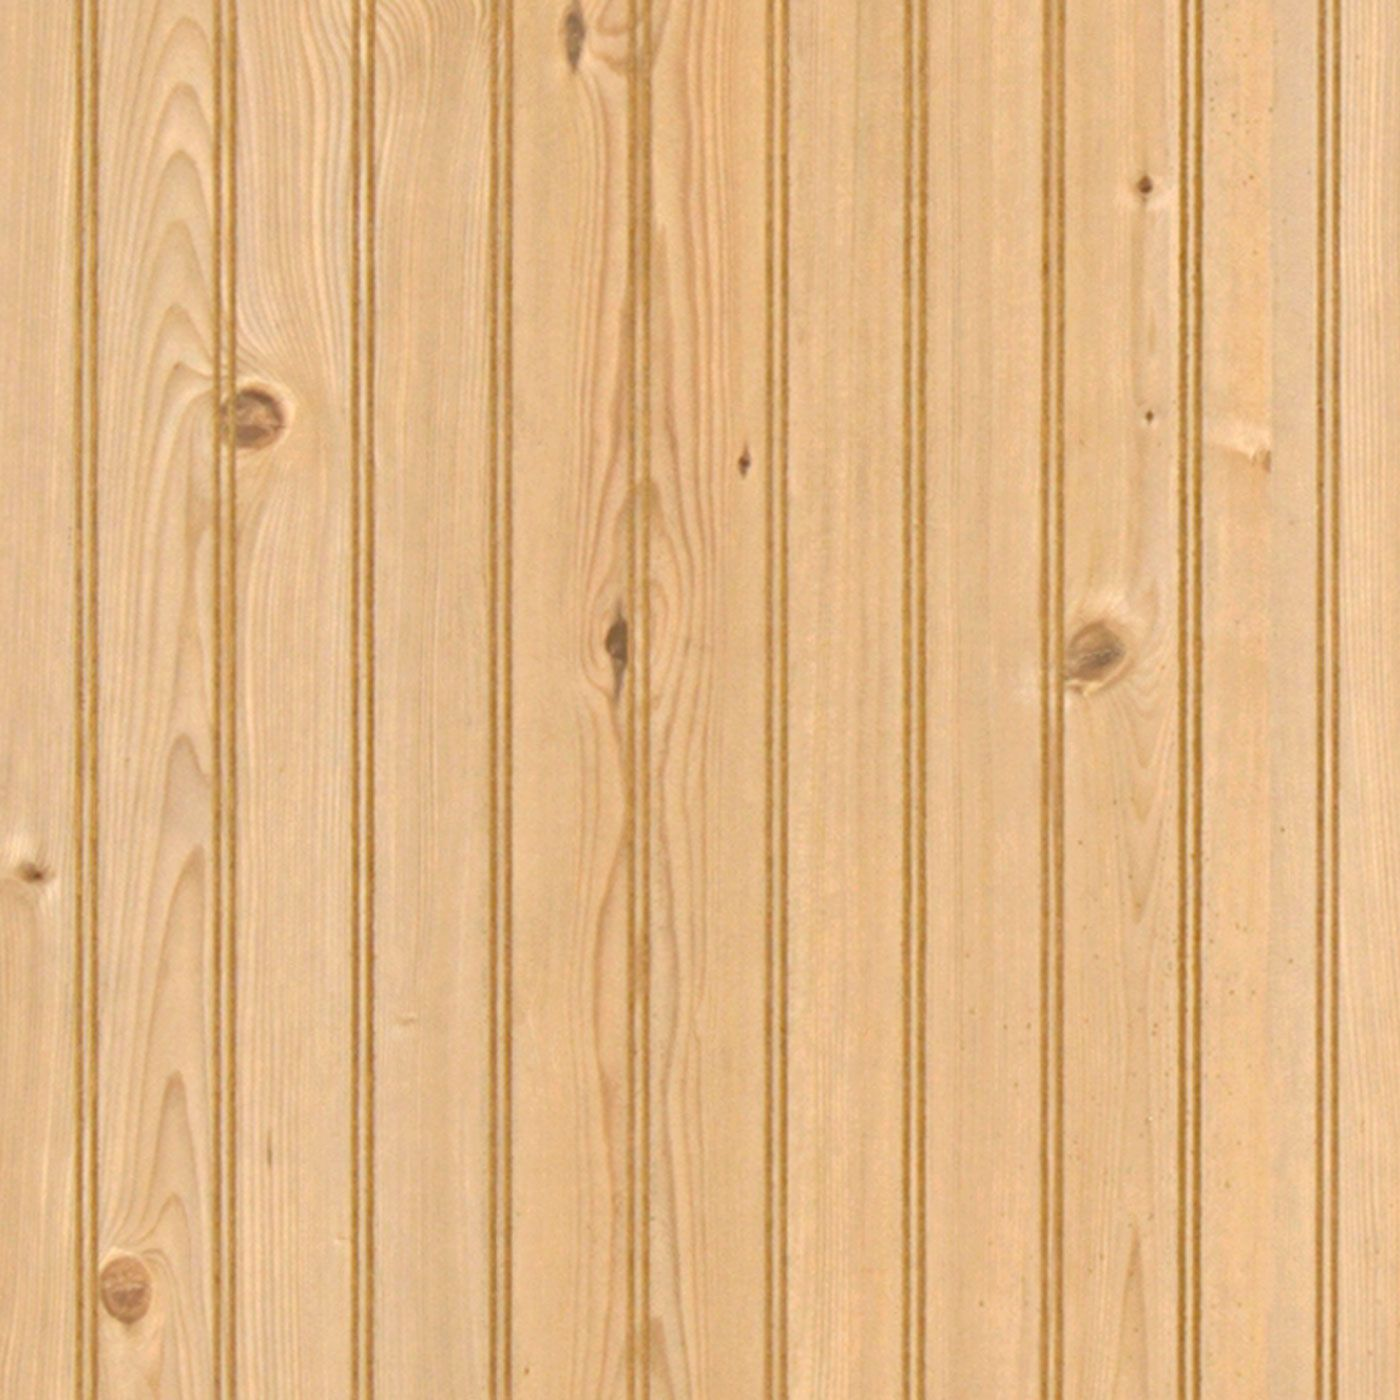 Rustic Pine 2 Inch Beadboard Paneling 4 x 8 | Pine, Wainscoting and ...